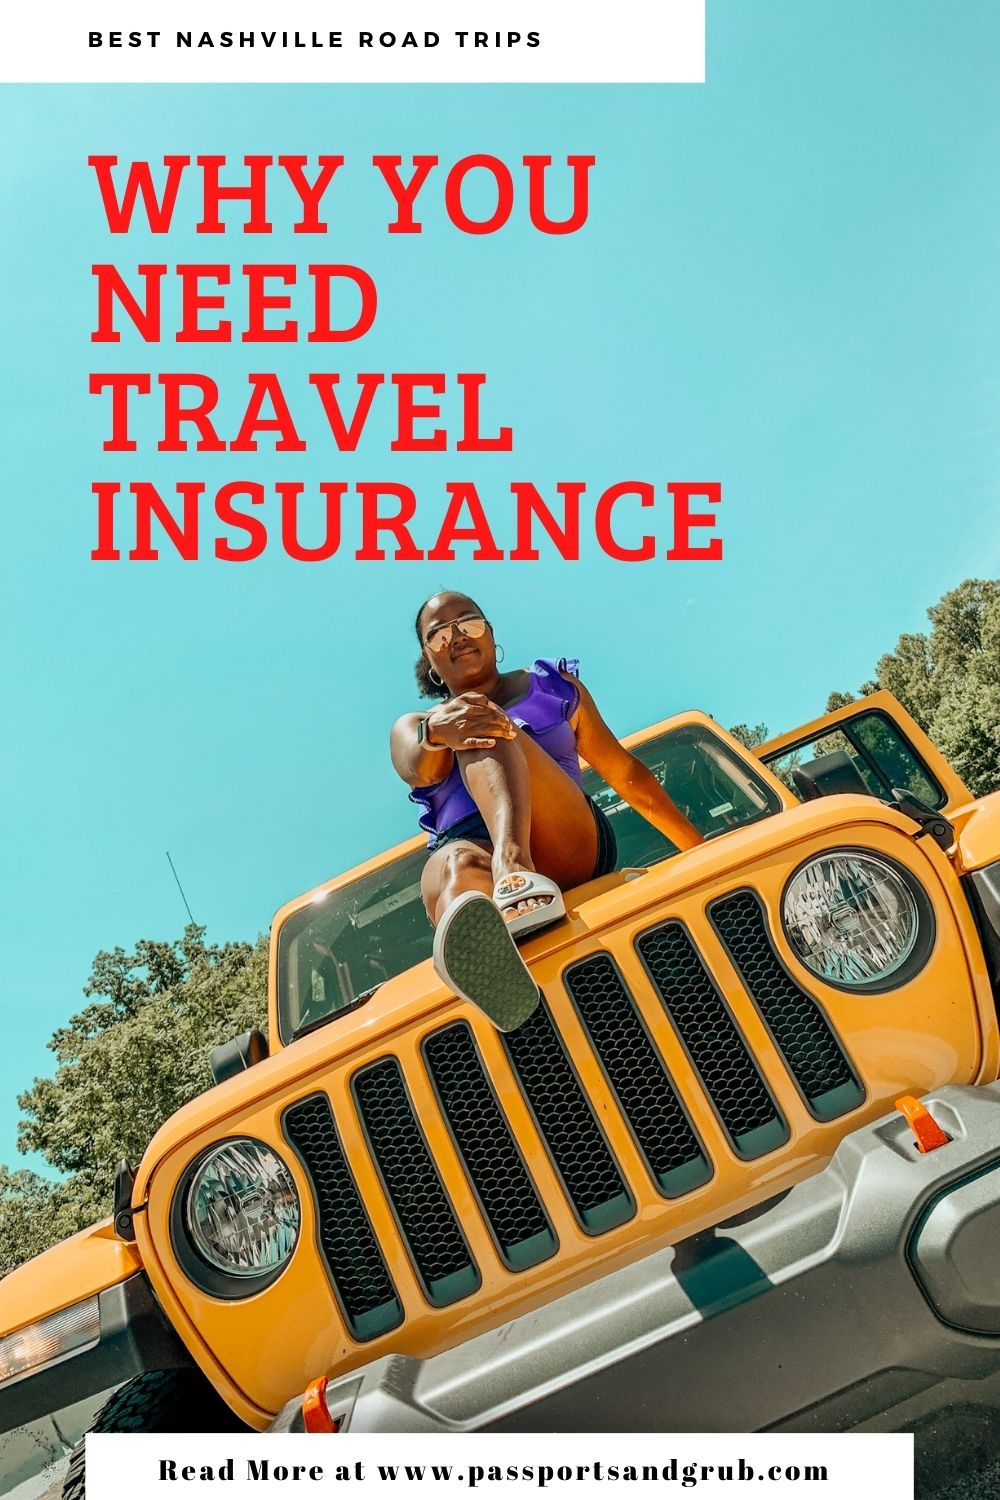 Road Trips to Nashville - Travel Insurance